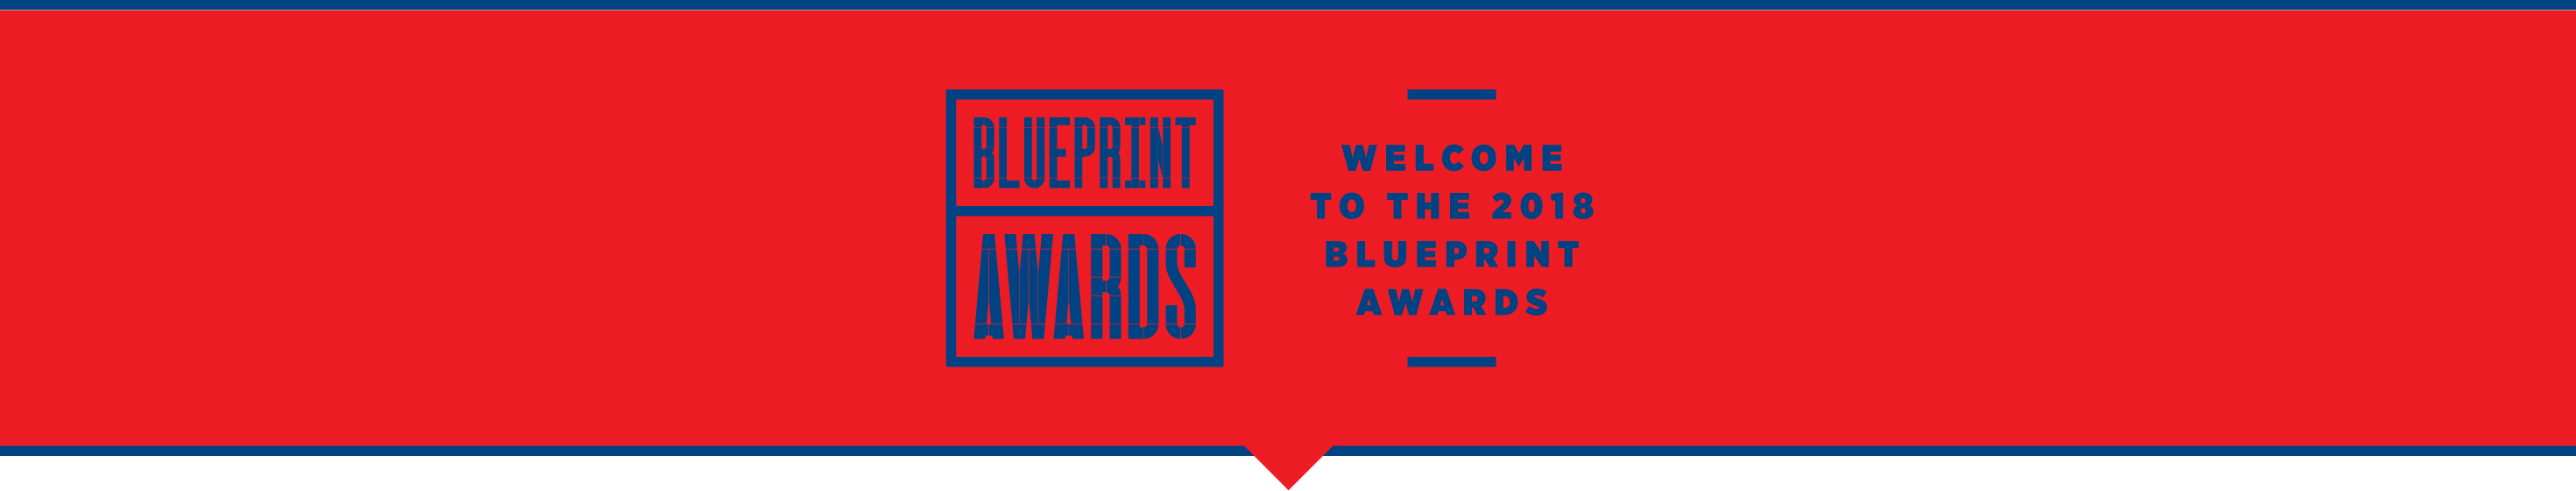 Blueprint awards malvernweather Gallery